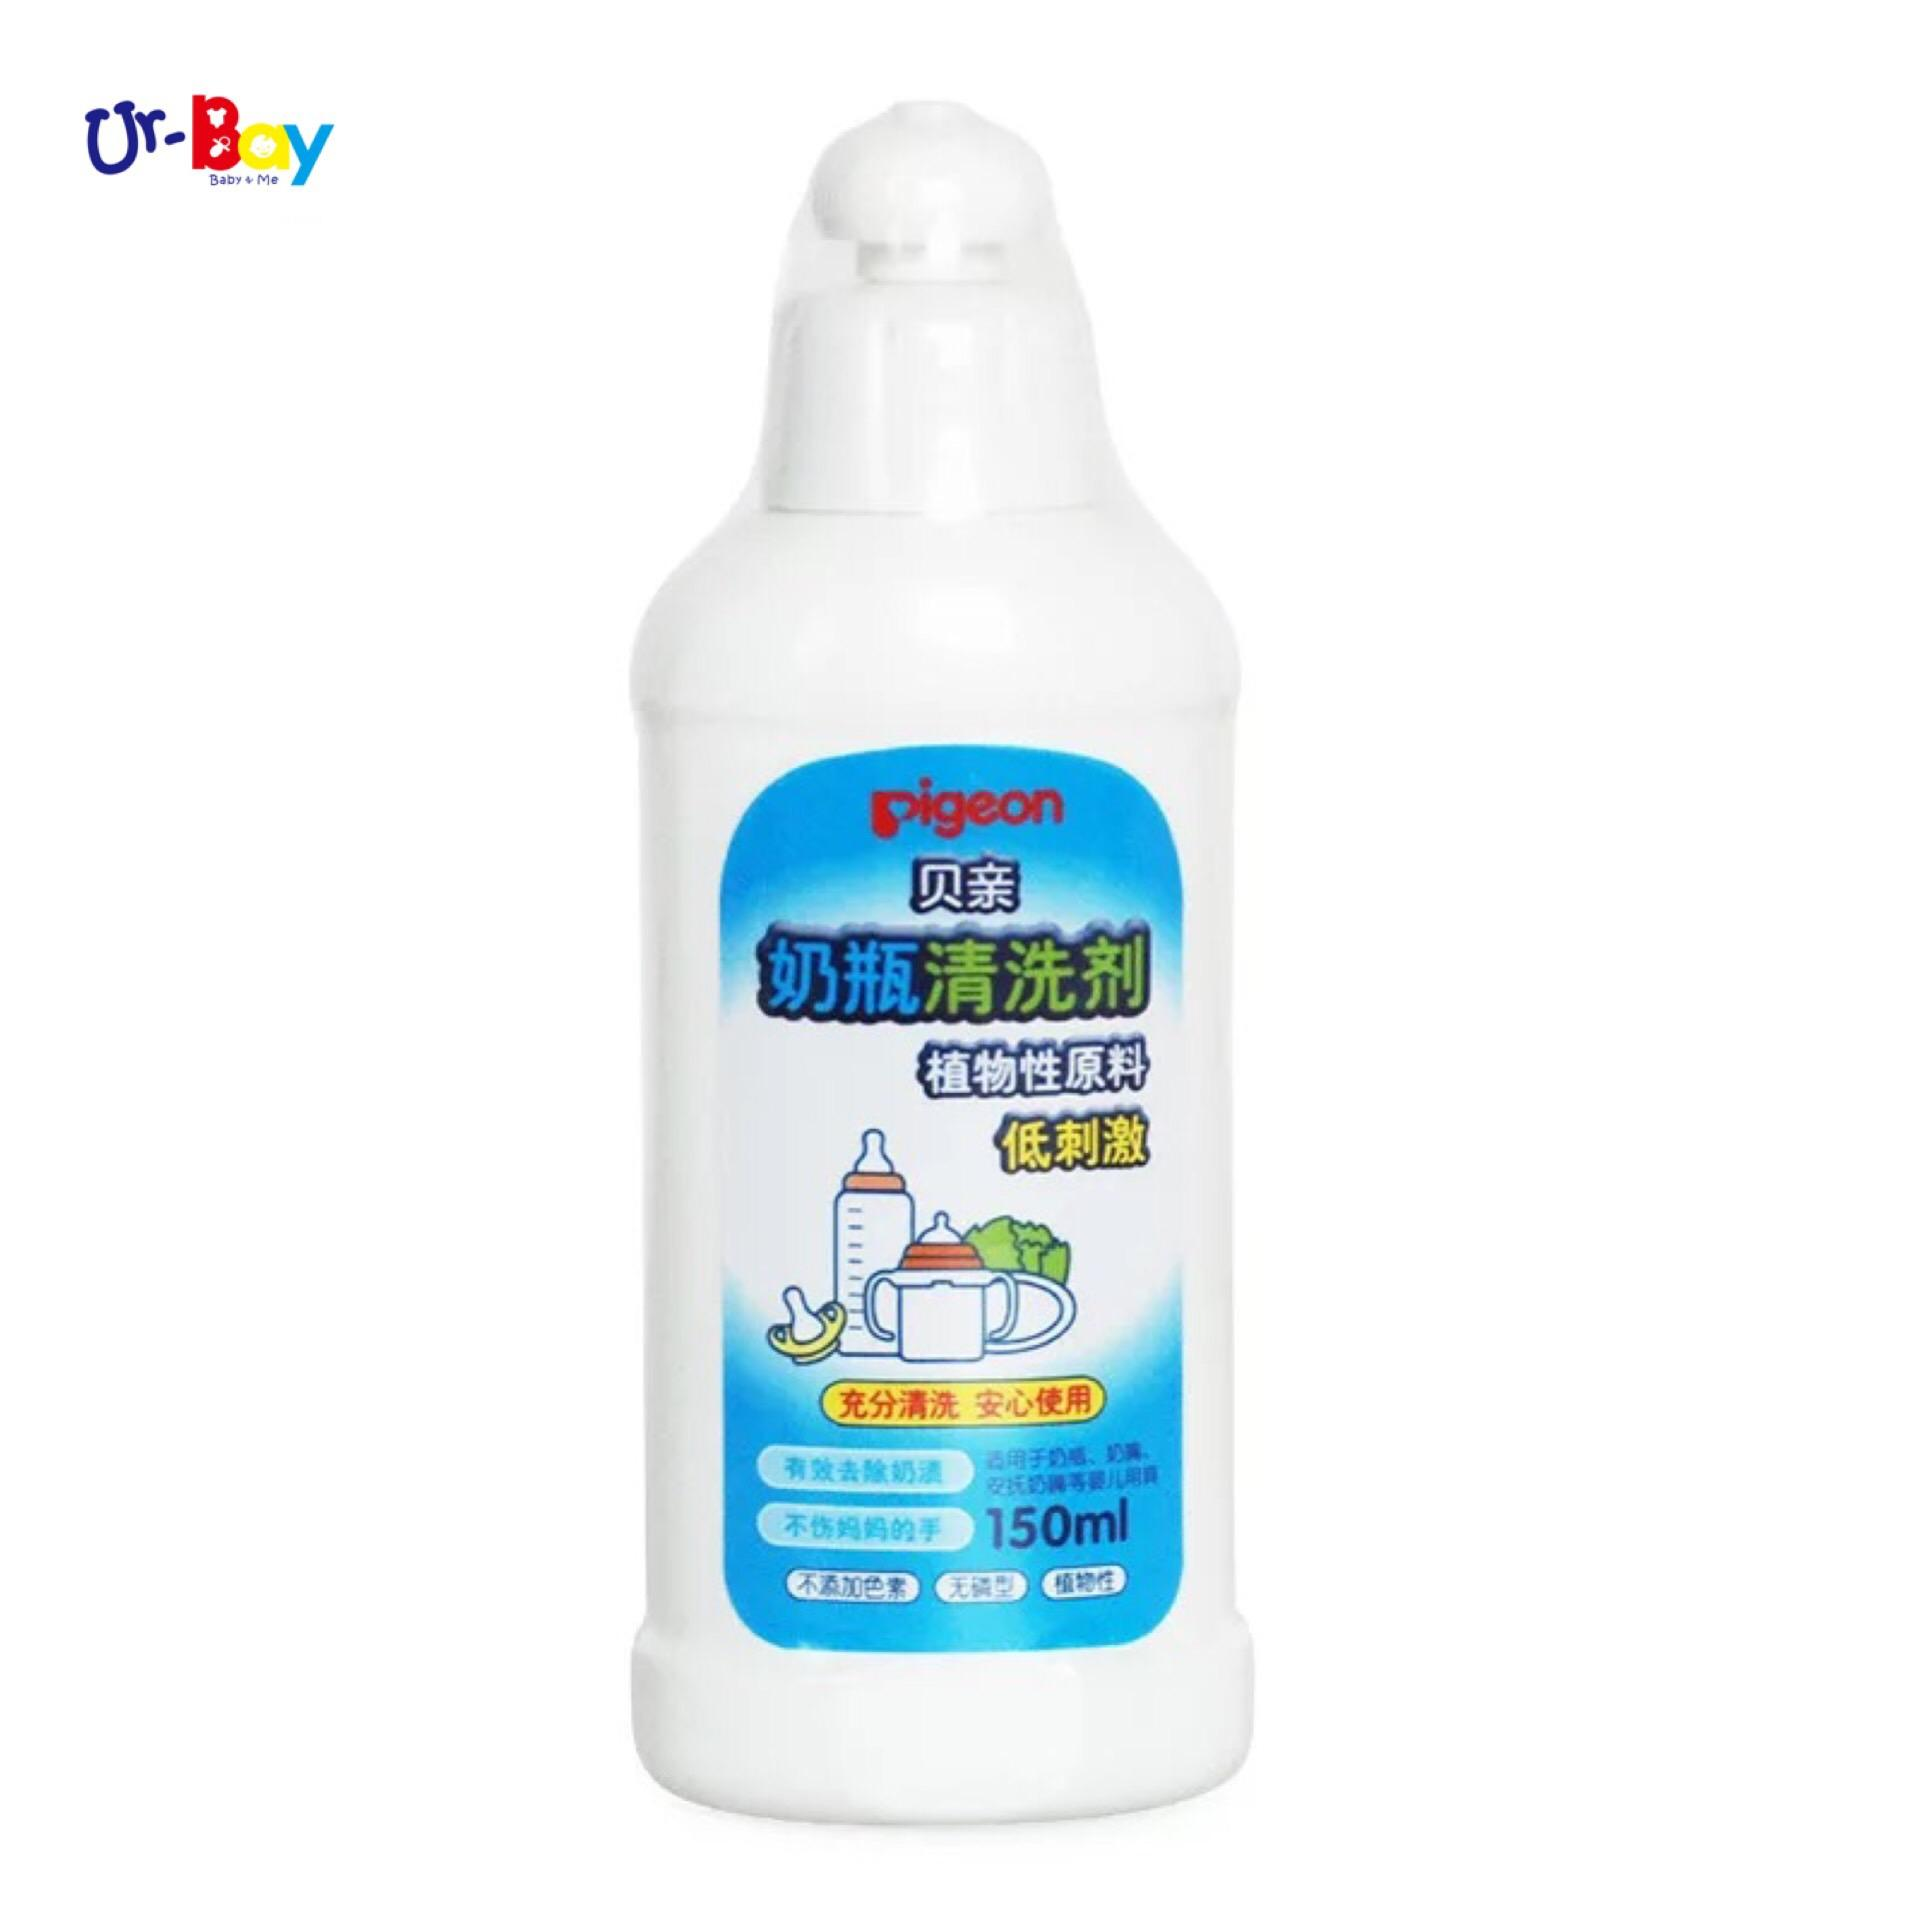 Buy Sell Cheapest Pigeon Liquid Cleanser Best Quality Product Baby Wash 2in1 Refill 600ml Bottle 150ml Feeding